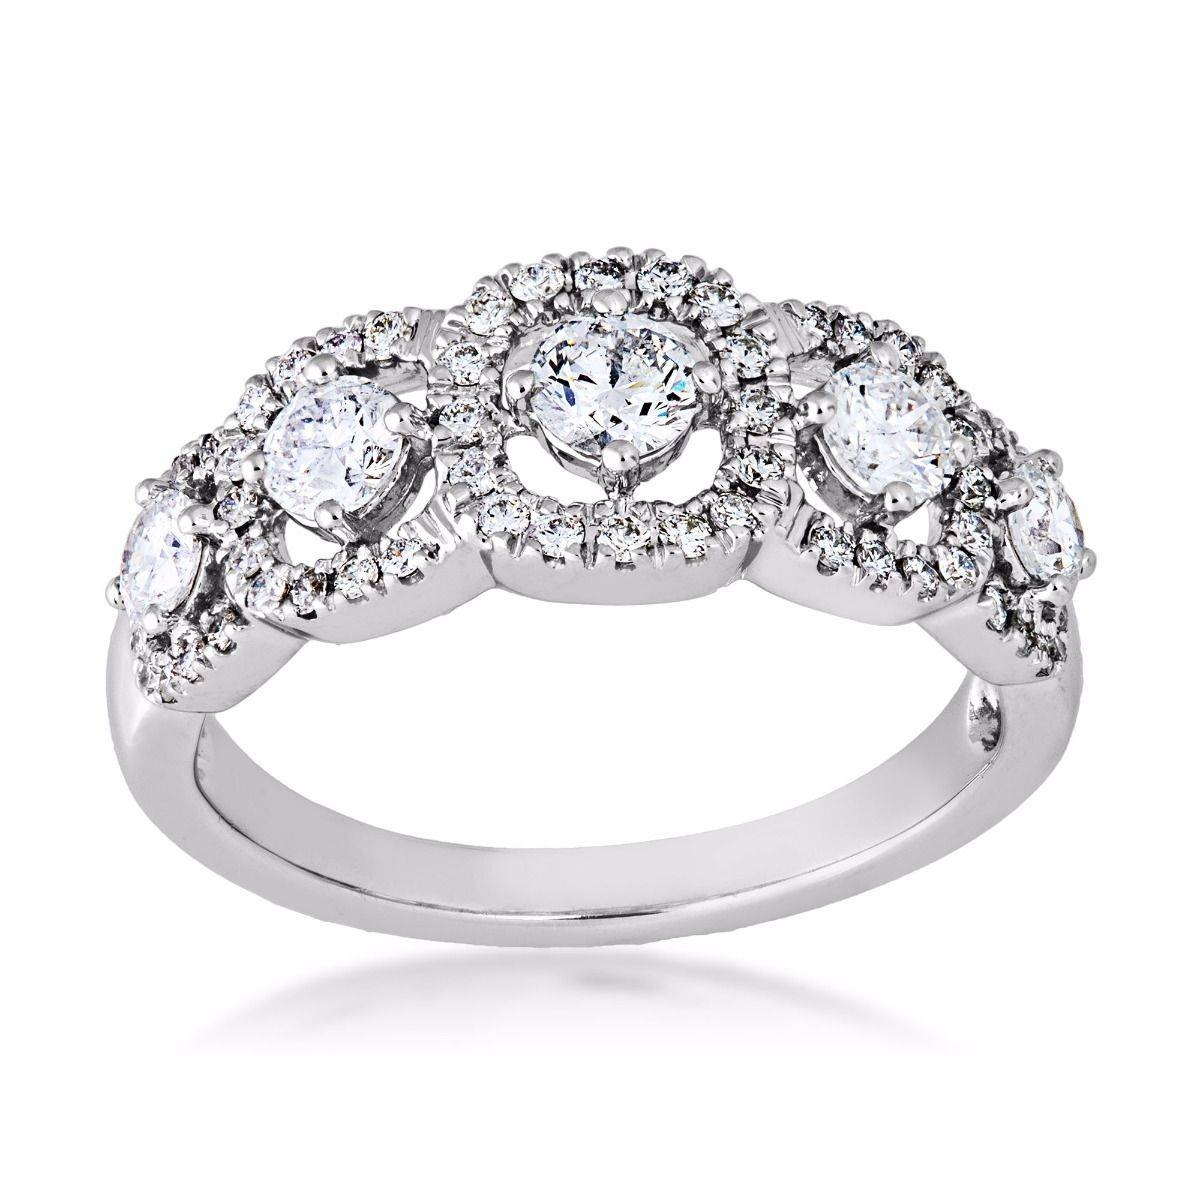 Women's Diamond Anniversary Bands – Shop Anniversary Rings, Bands Inside Most Up To Date Anniversary Rings (View 25 of 25)